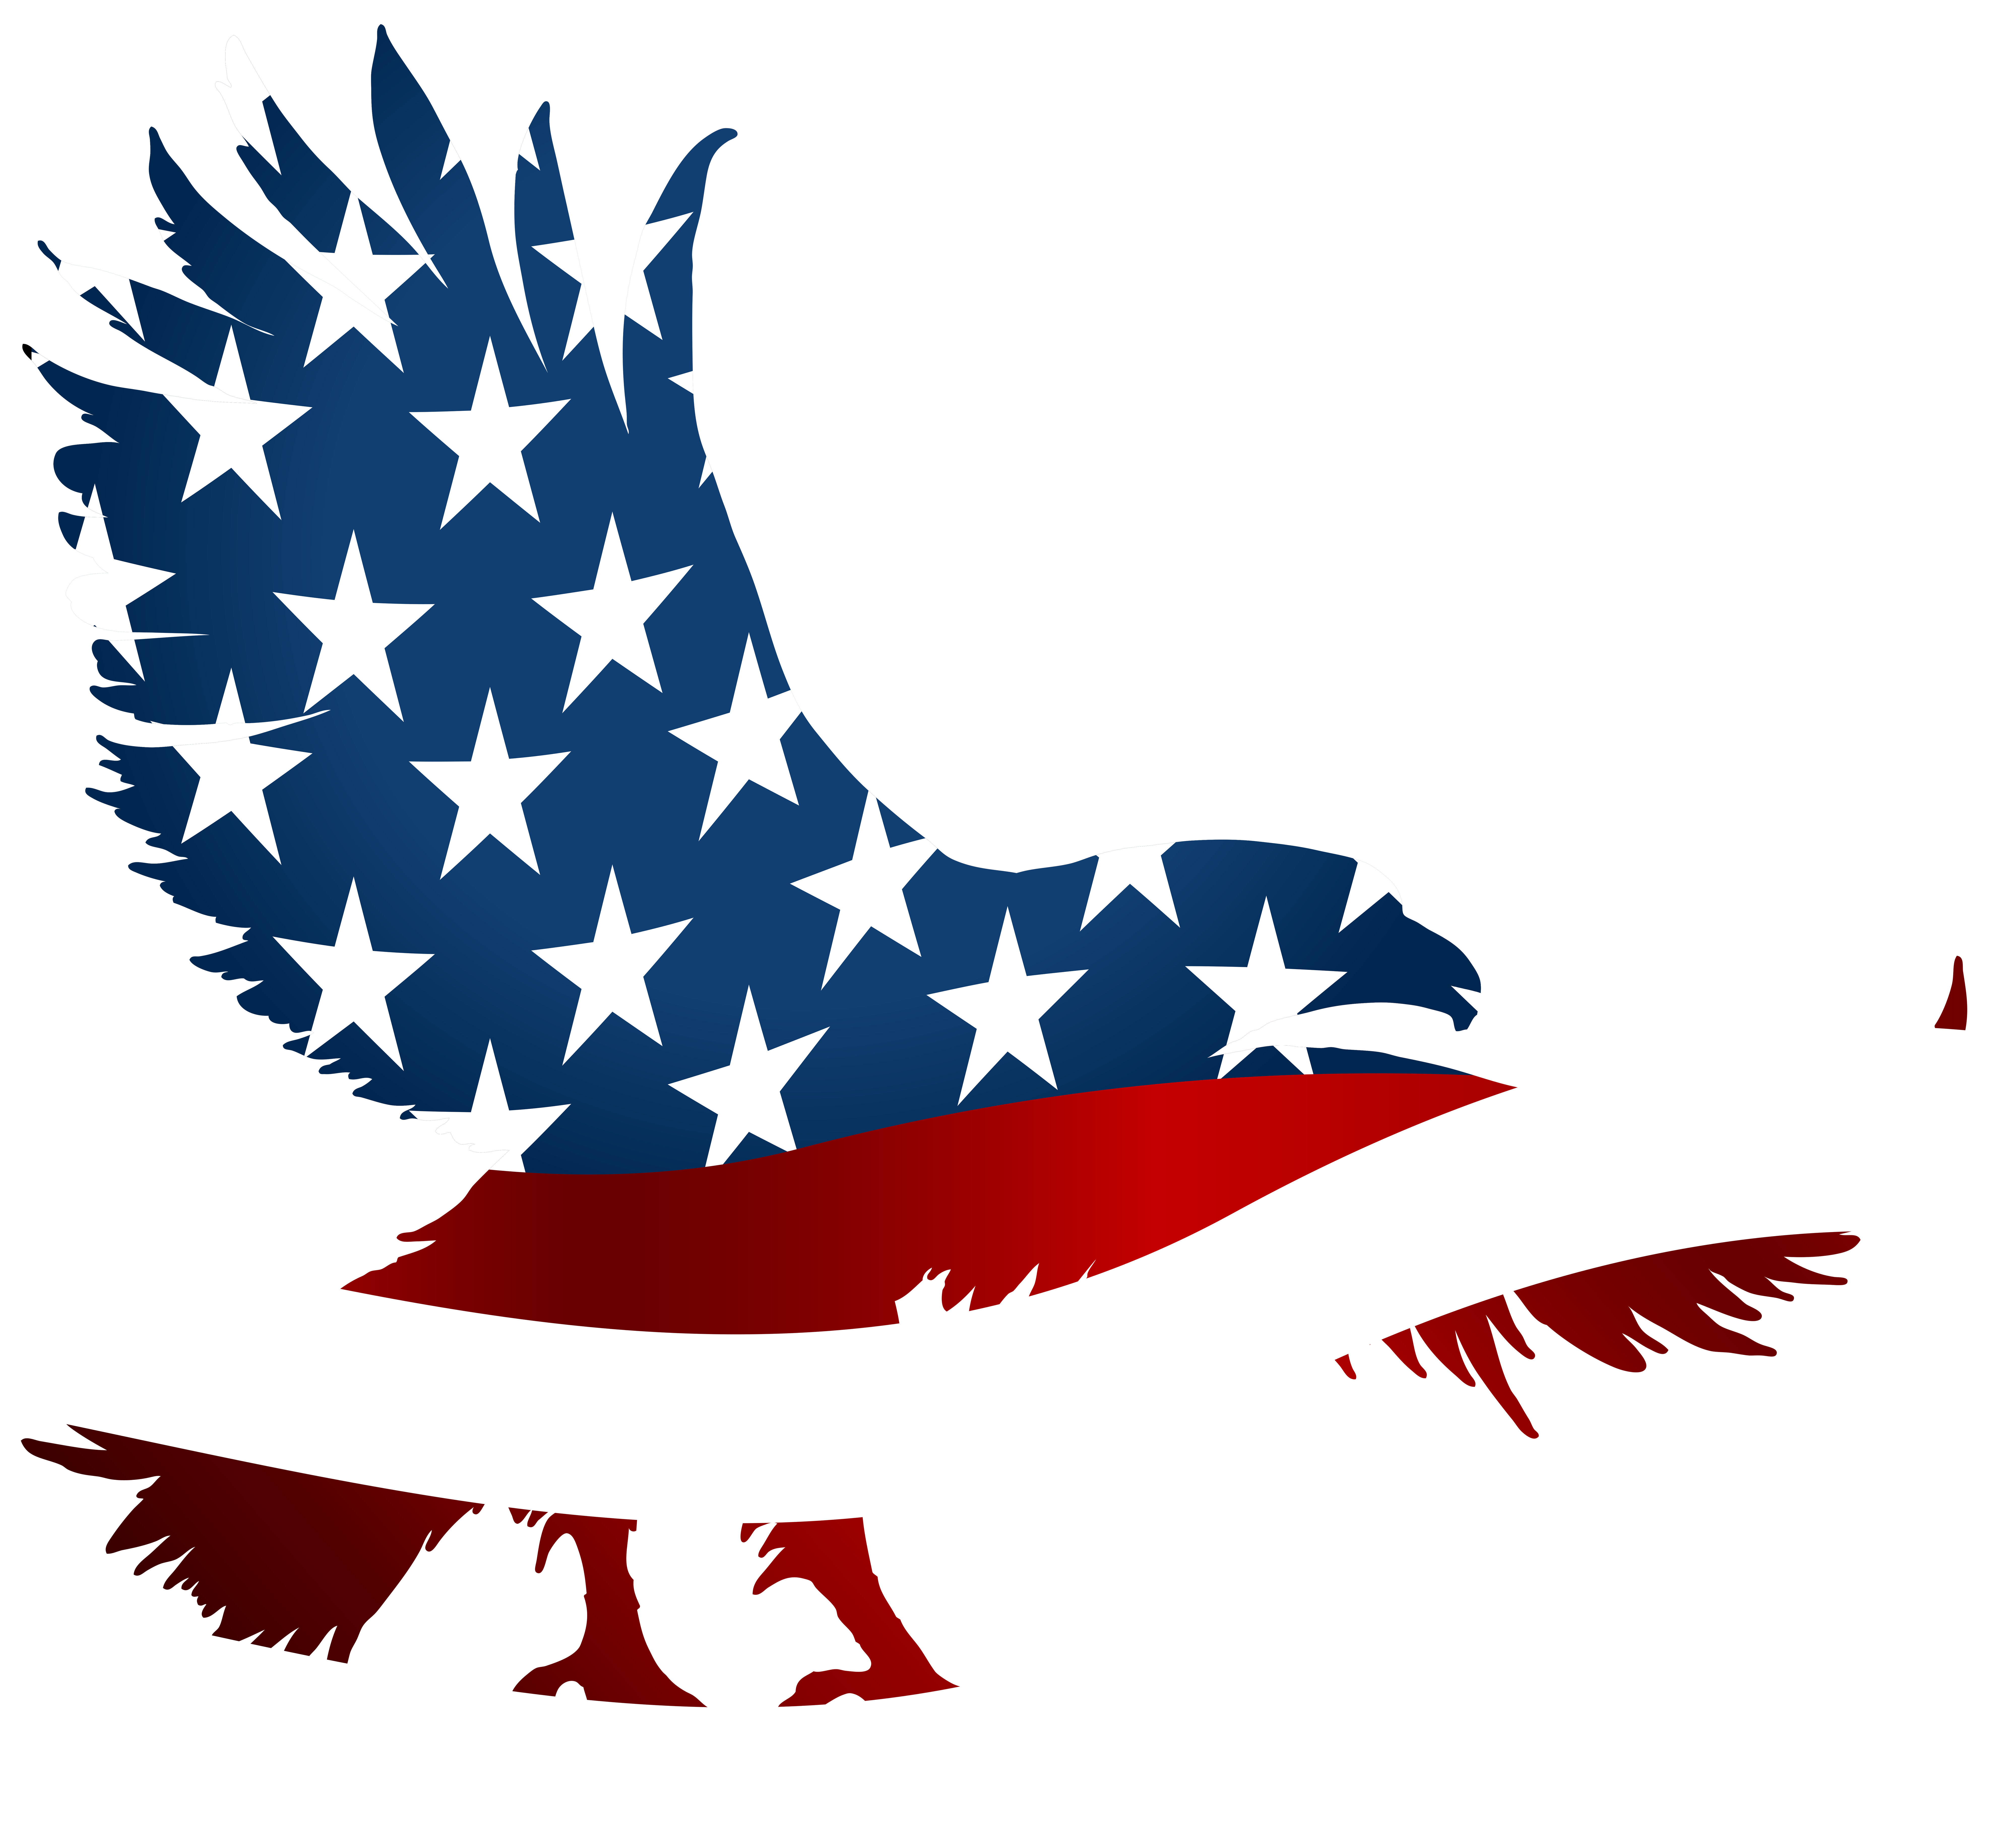 Eagle clipart banner.